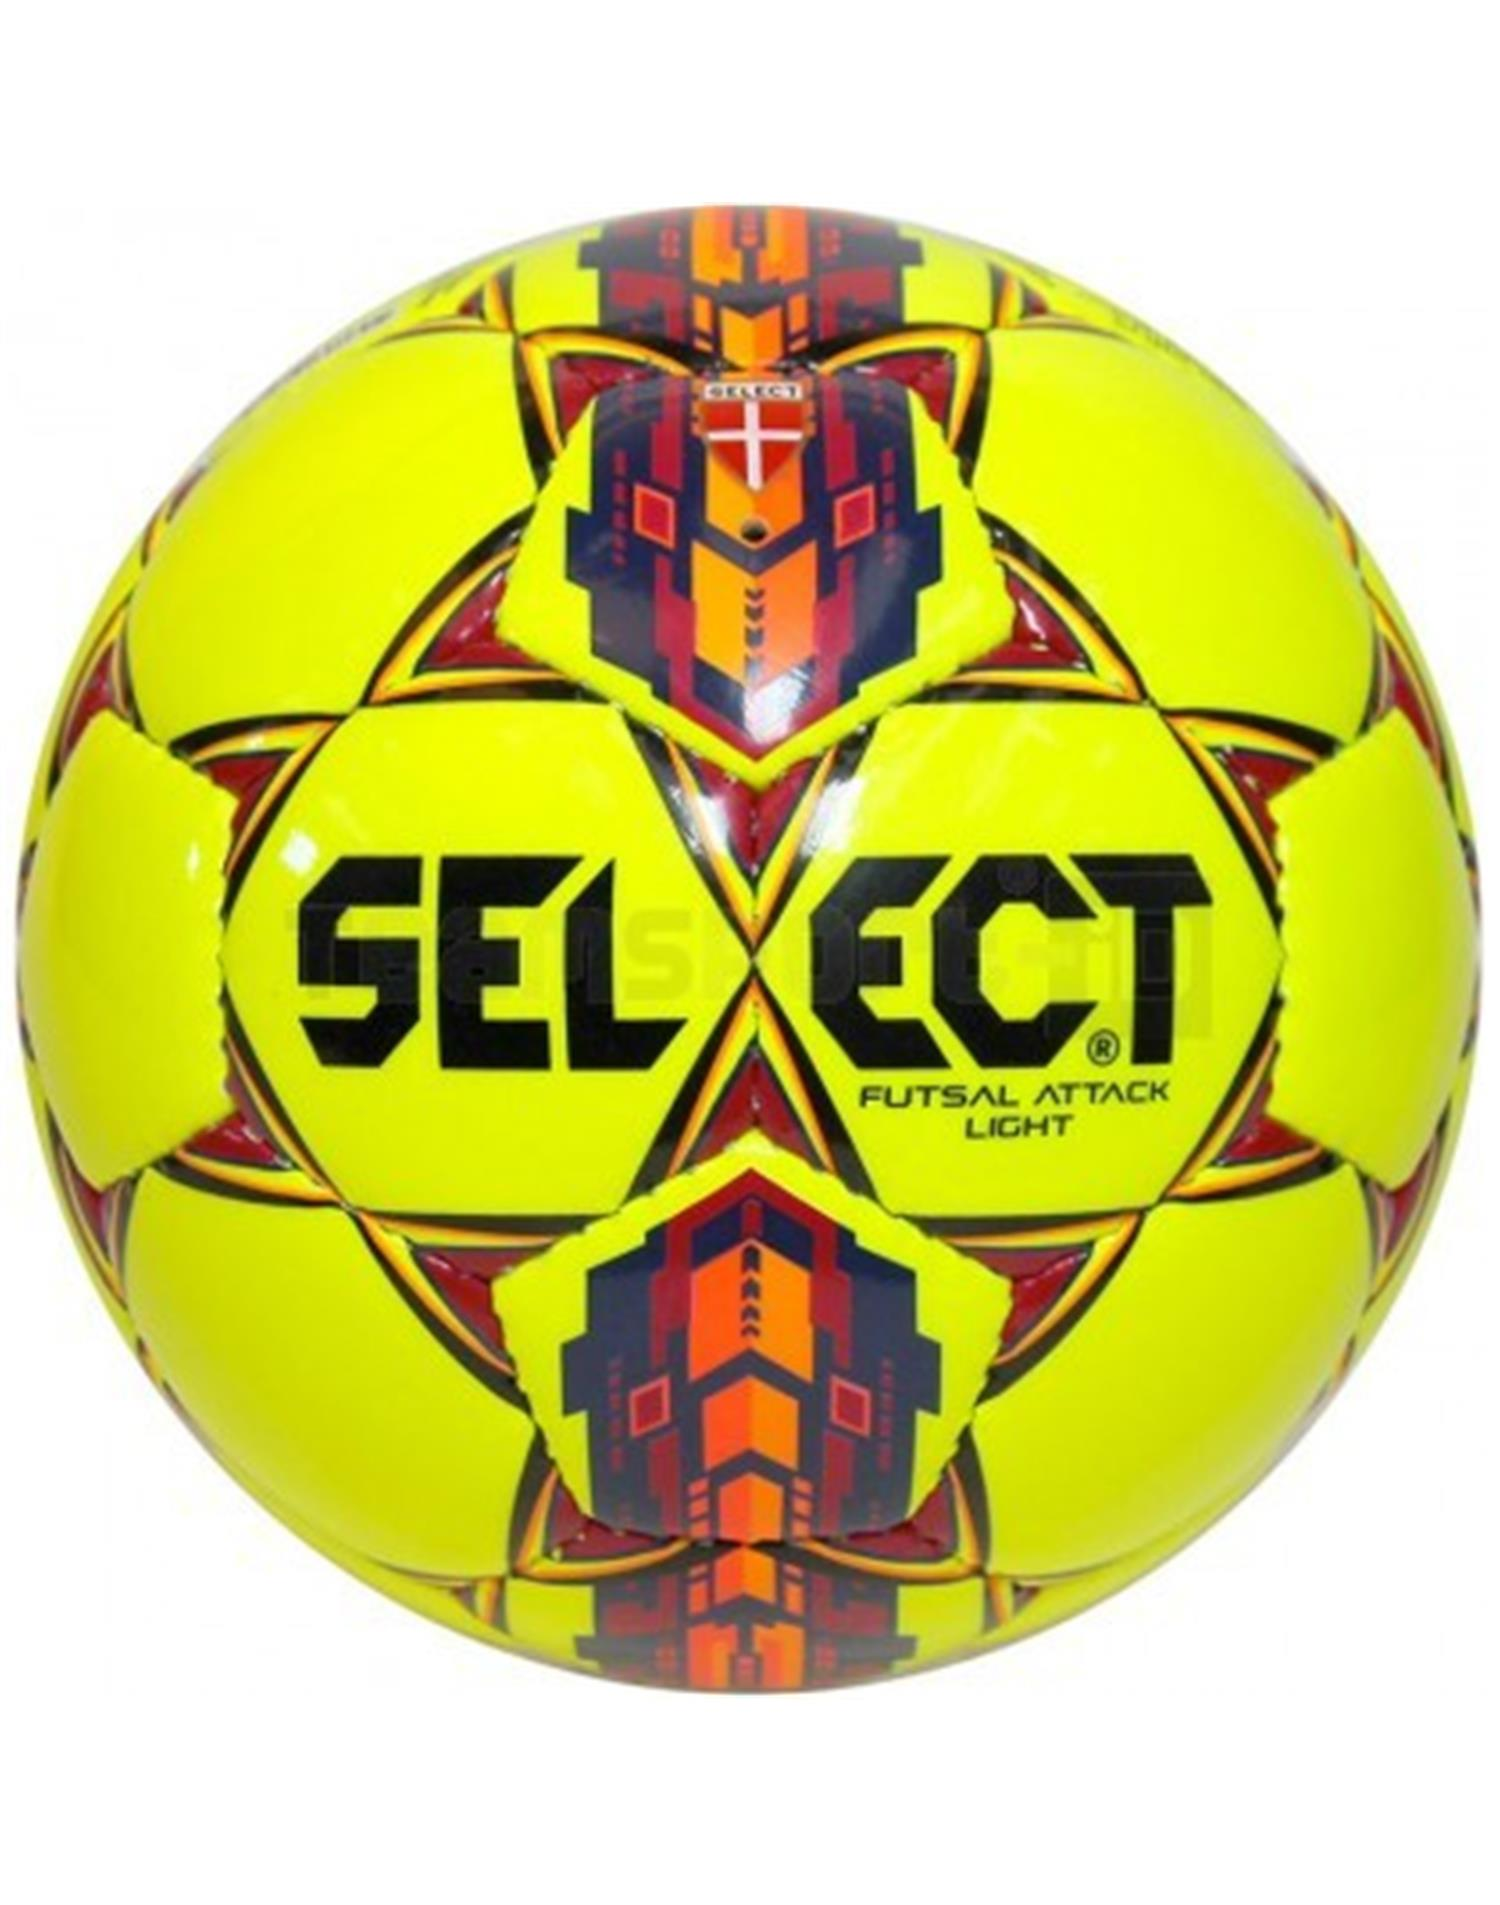 SELECT Pallone calcio a 5 Futsal Attack Light (CALCIO A 5 - GIALLO - ARANCIO)